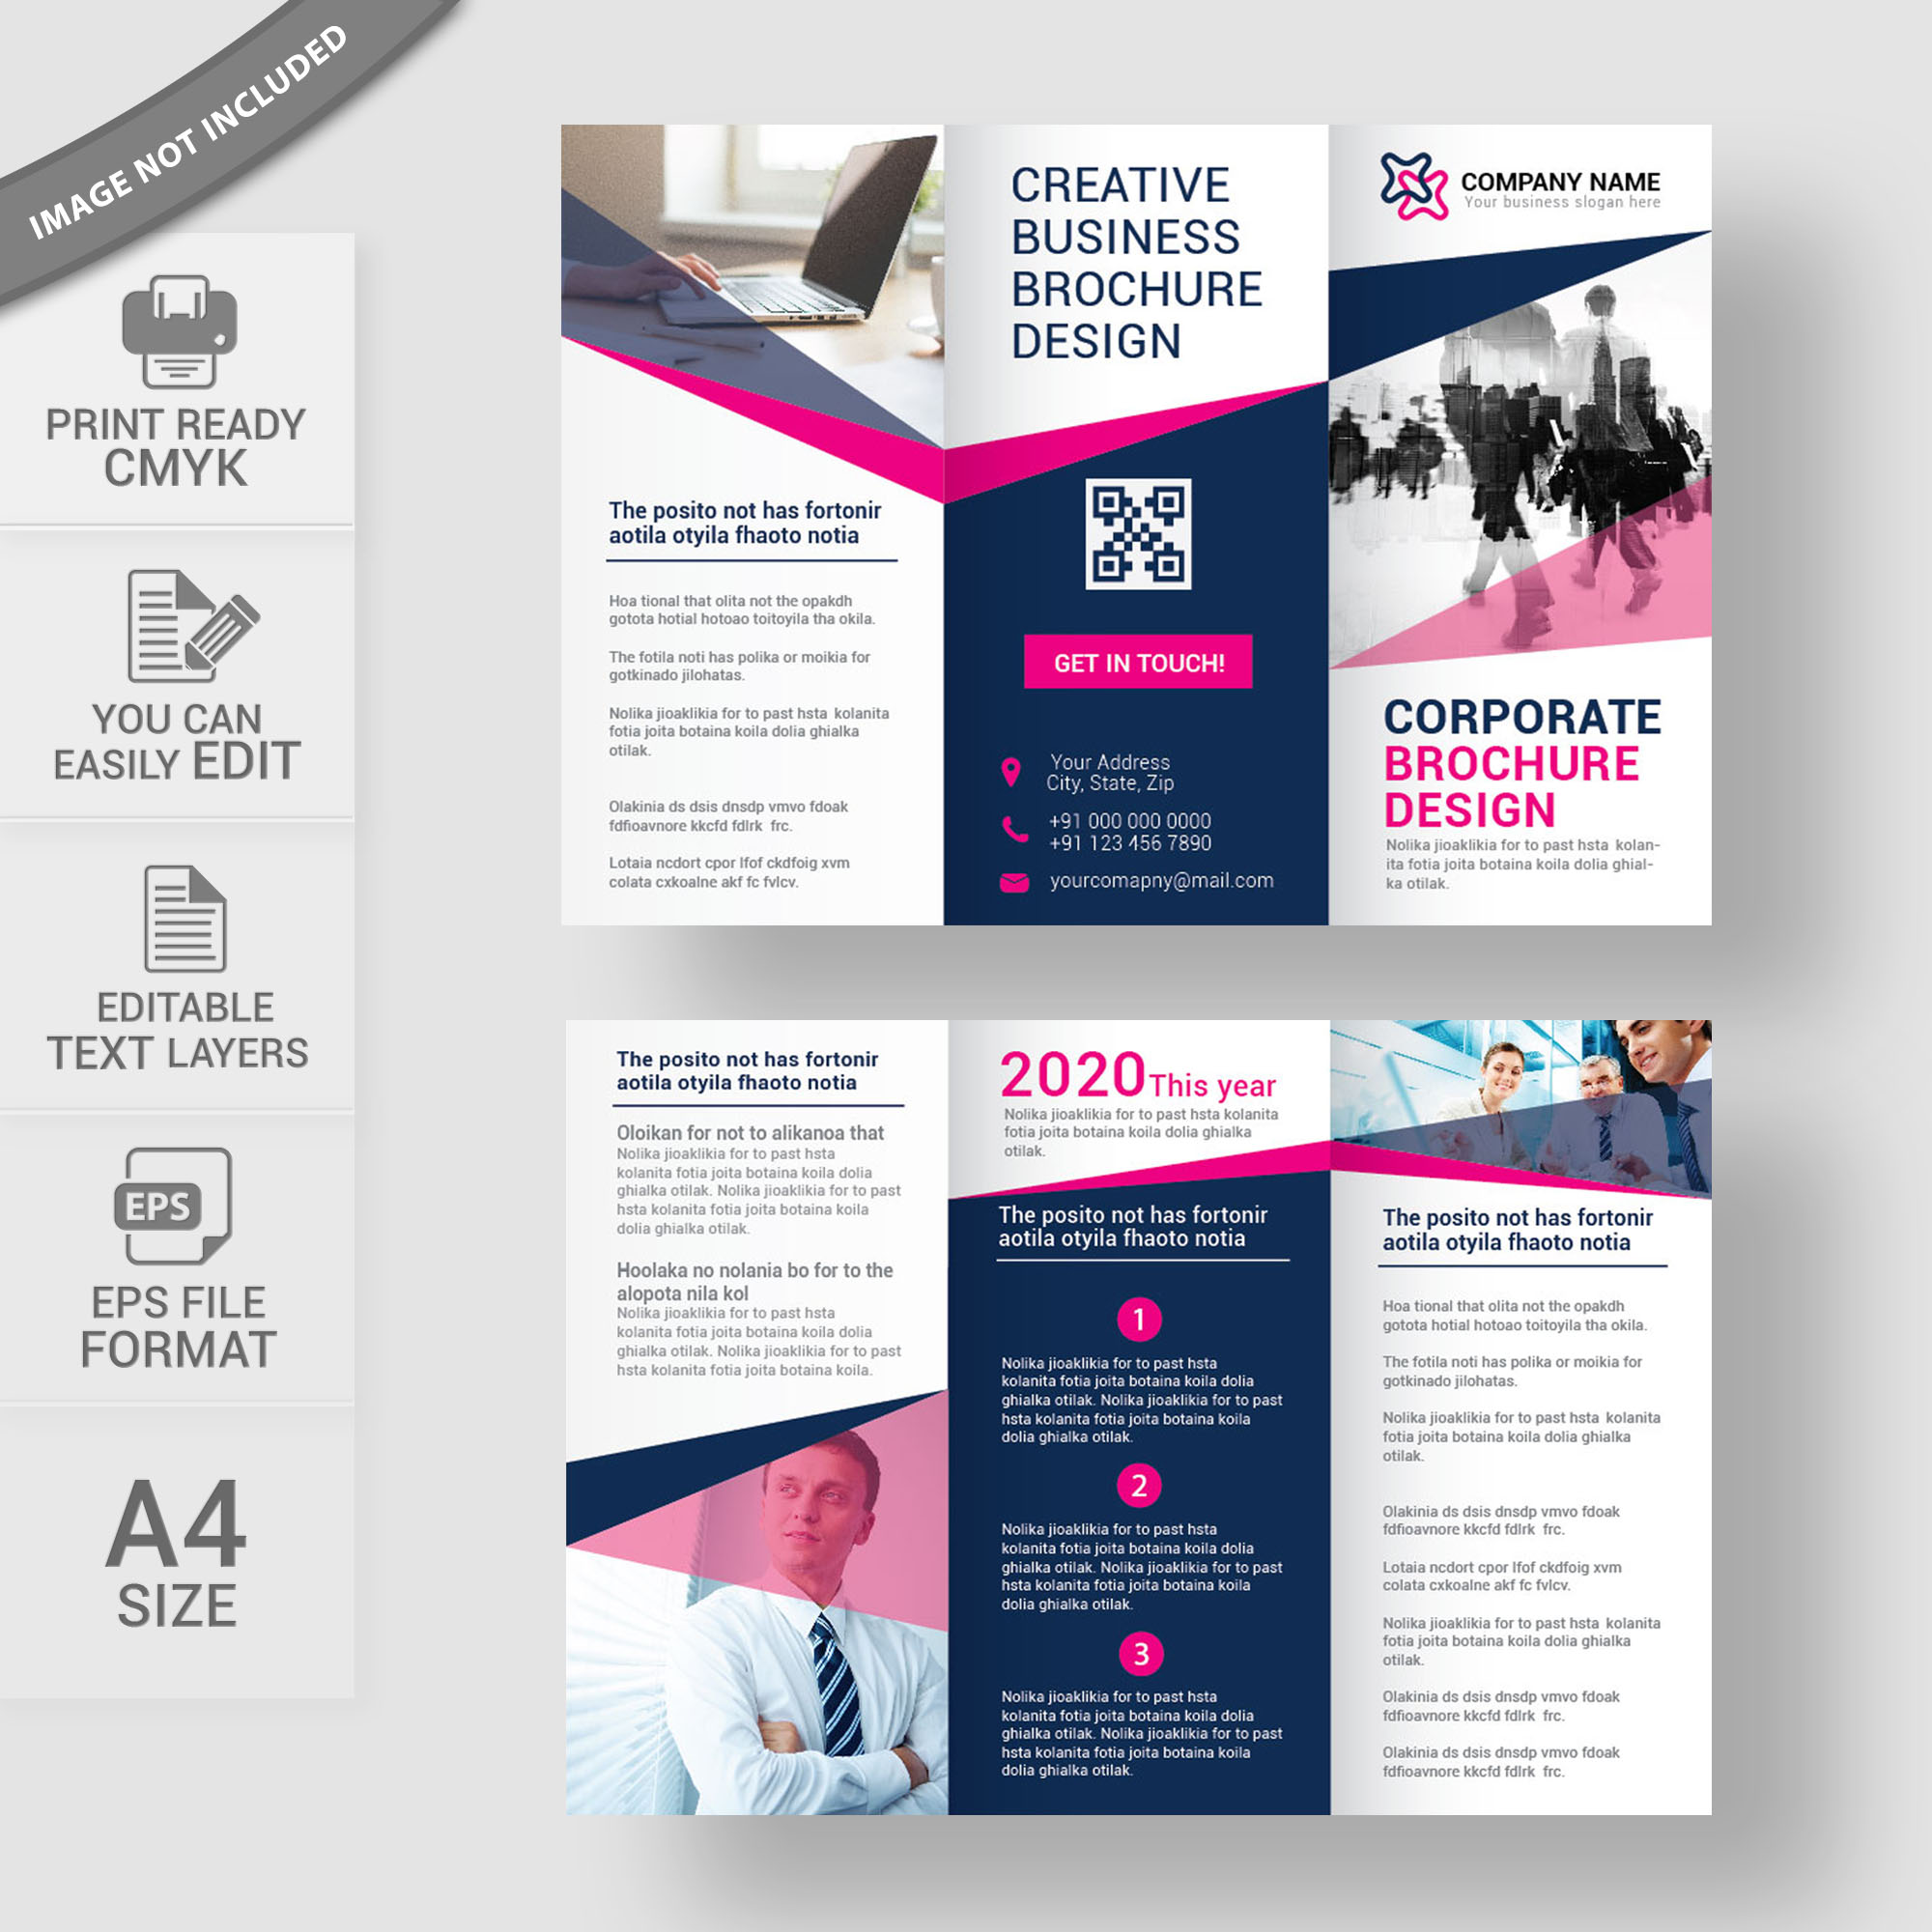 Tri Fold Brochure Free Vector Download Wisxicom - Business brochures templates